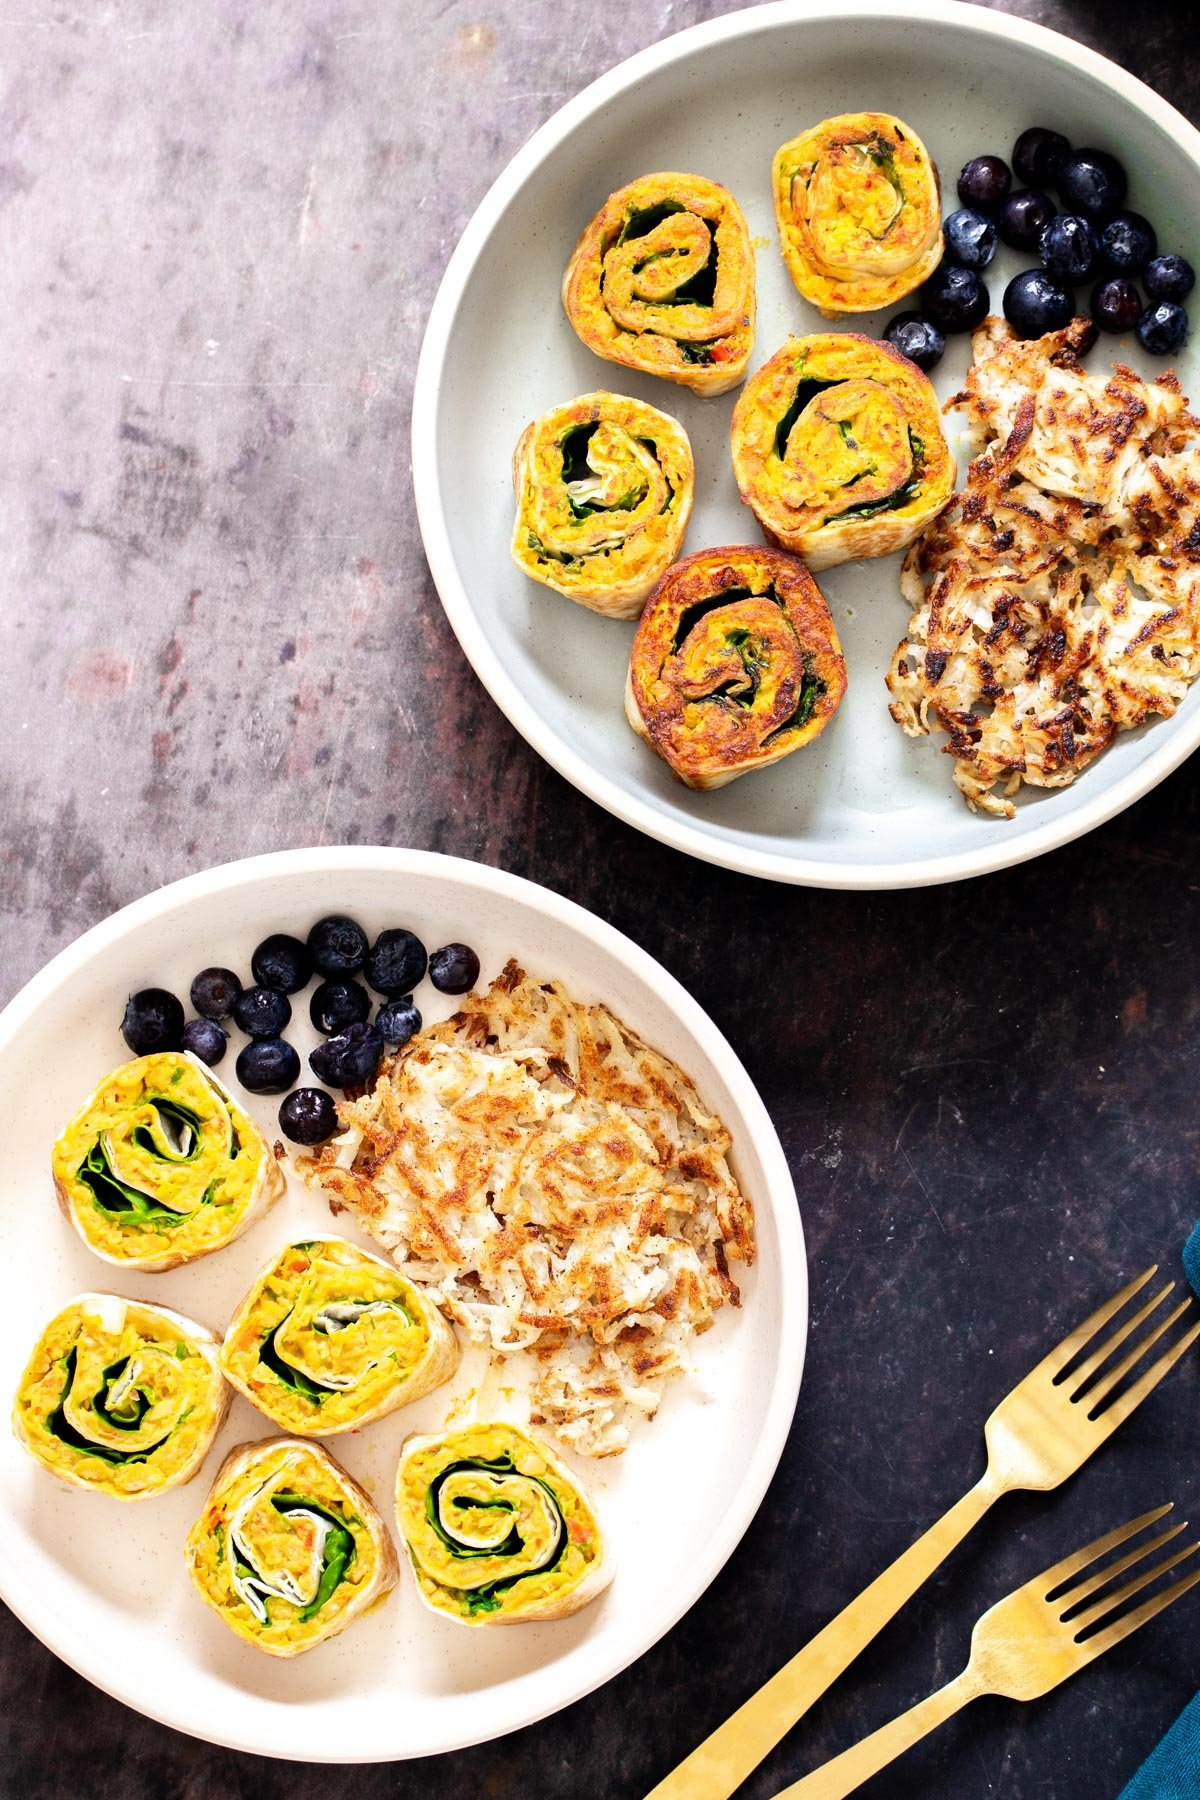 two plates with vegan chickpea breakfast scramble pinwheels served with berries and hashbrowns